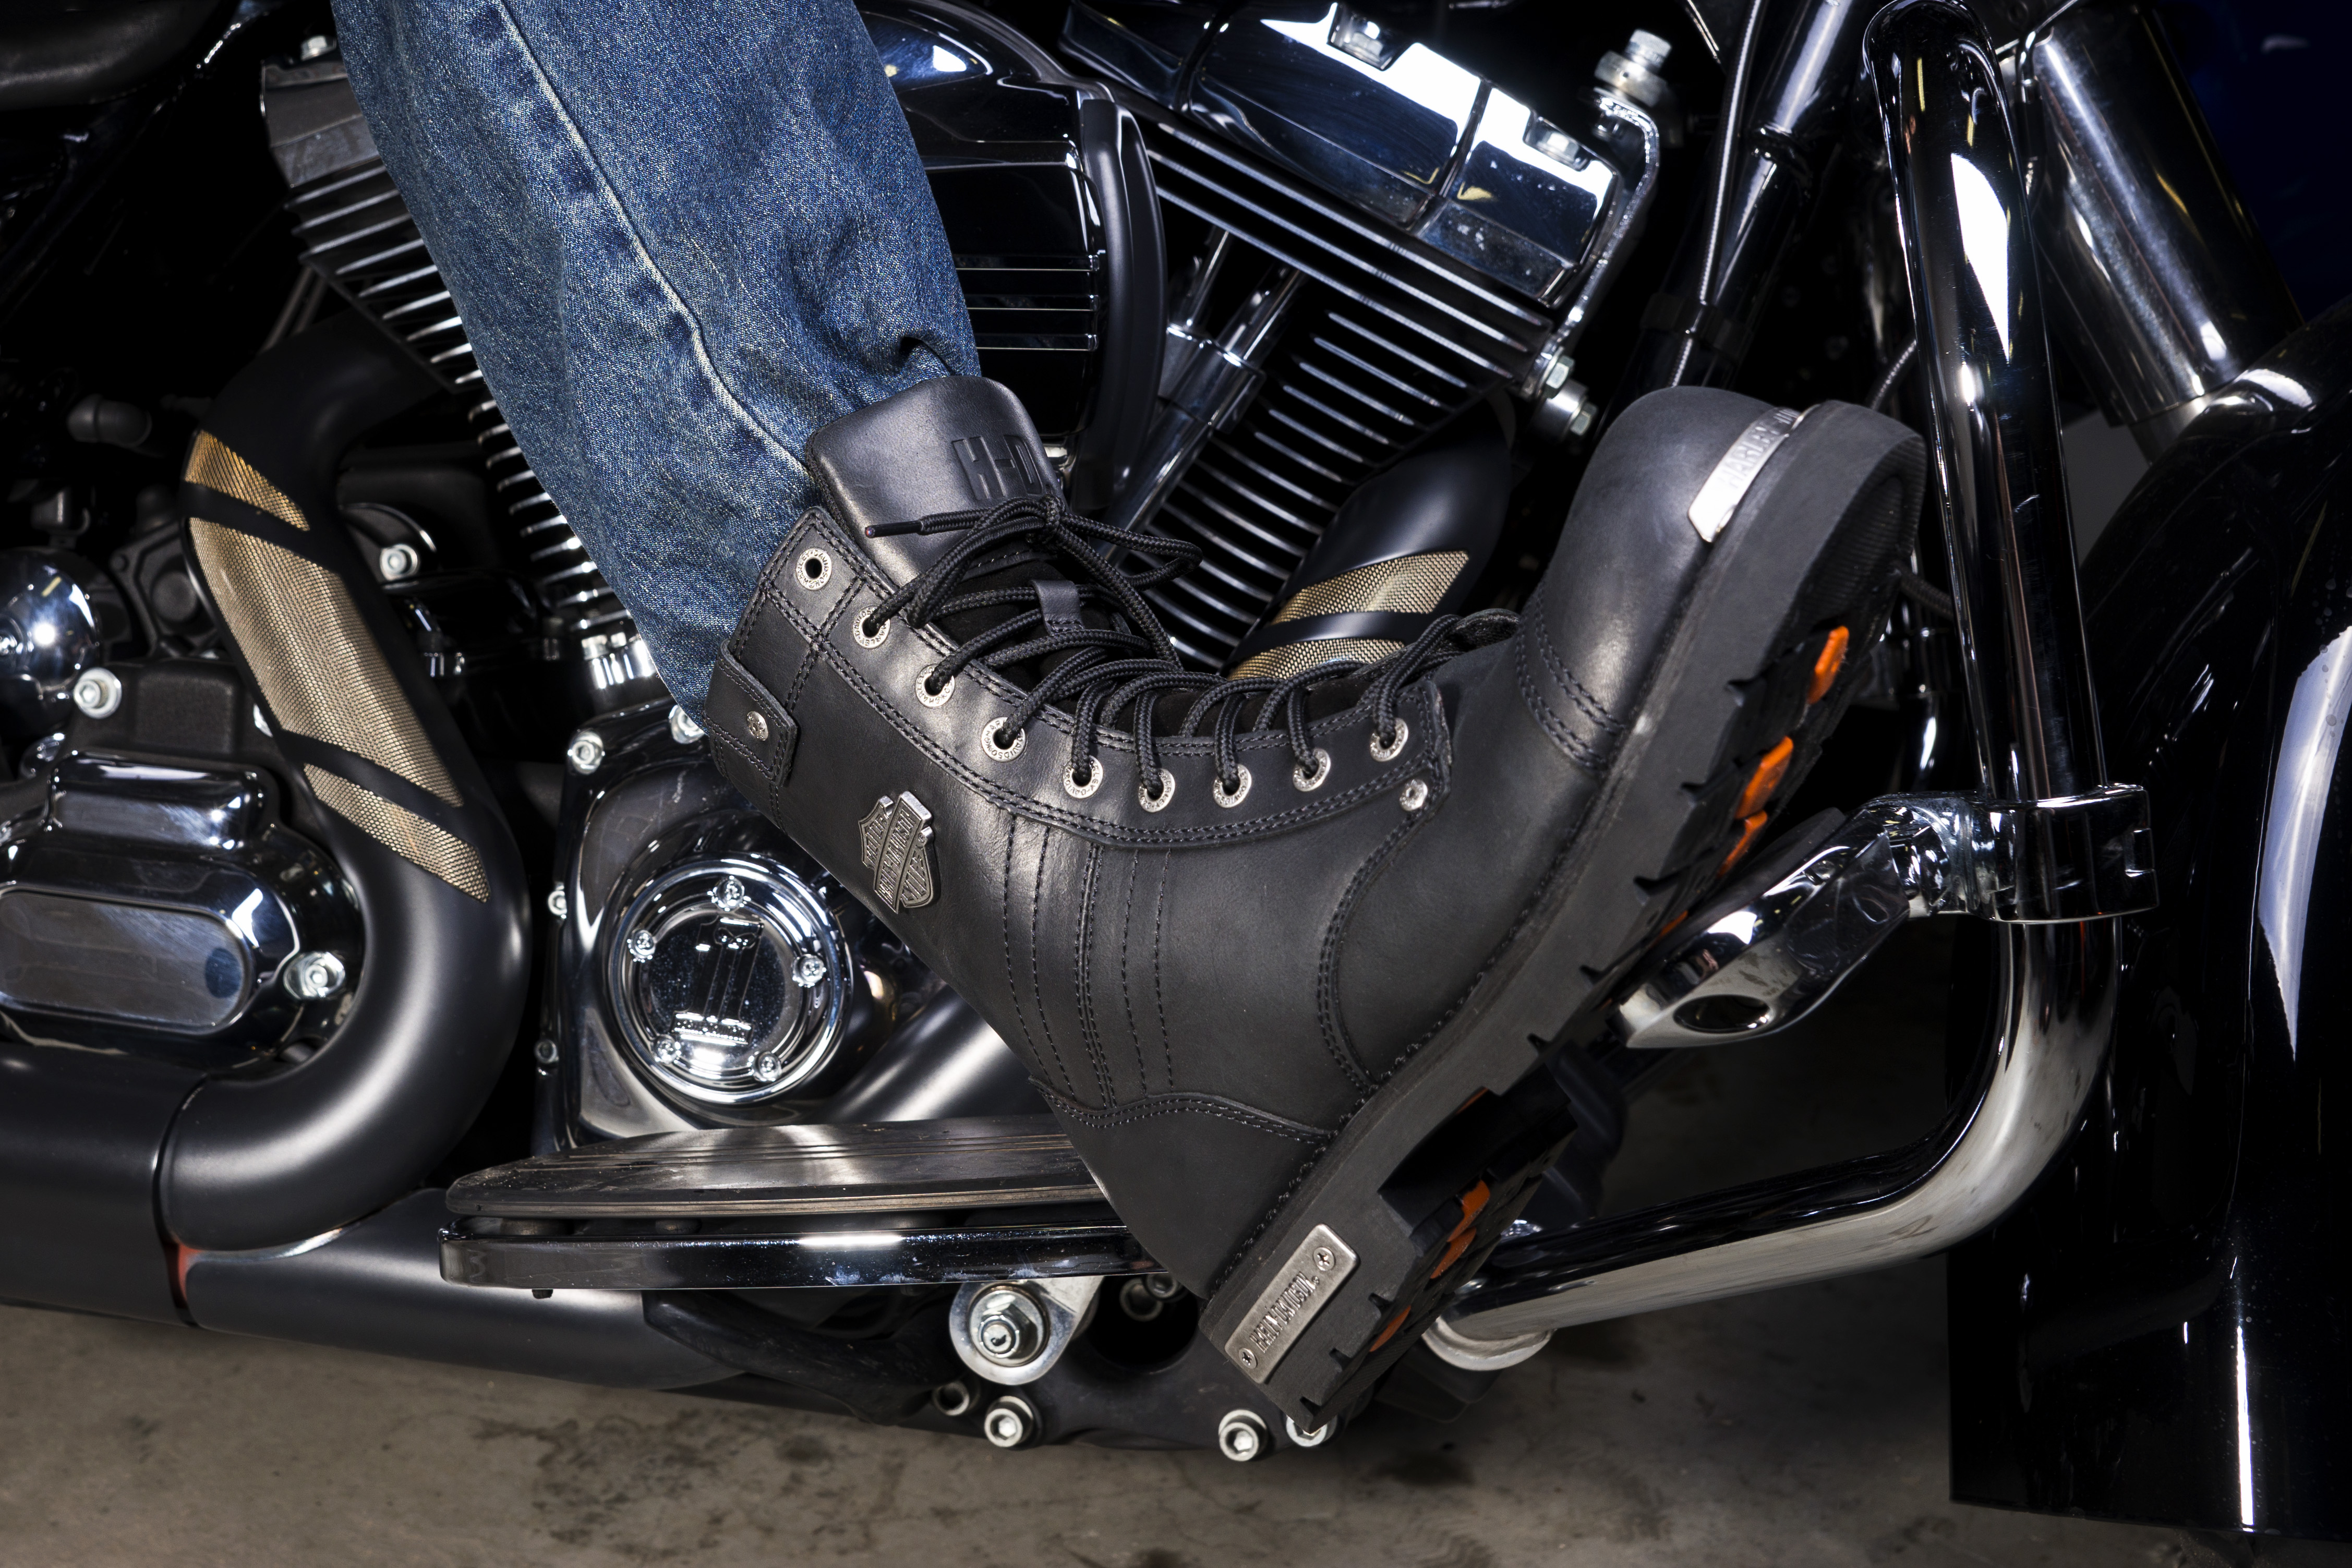 Boots at Wisconsin Harley-Davidson